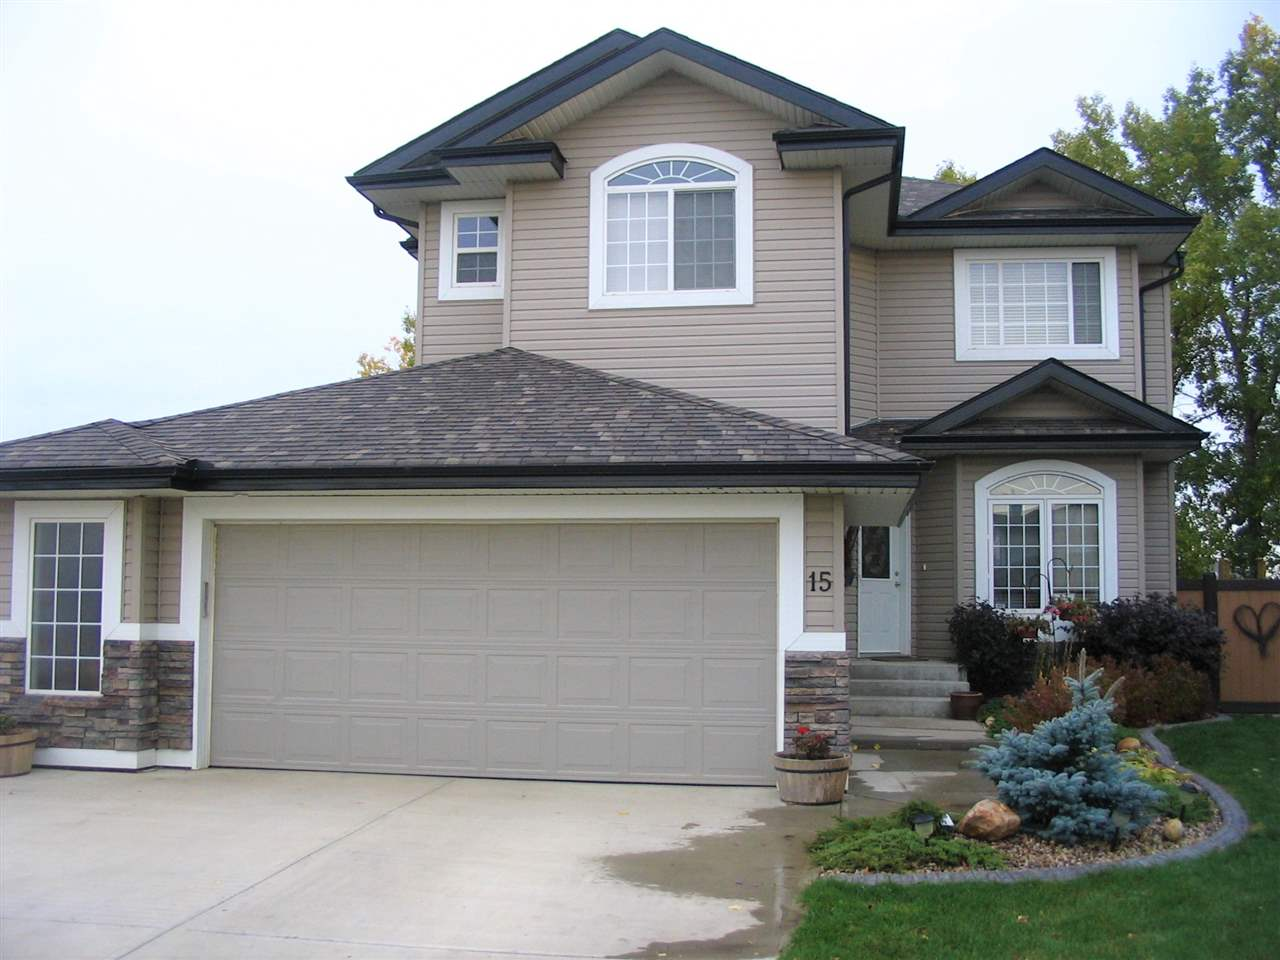 MLS® listing #E4148465 for sale located at 15 NORFOLK Close